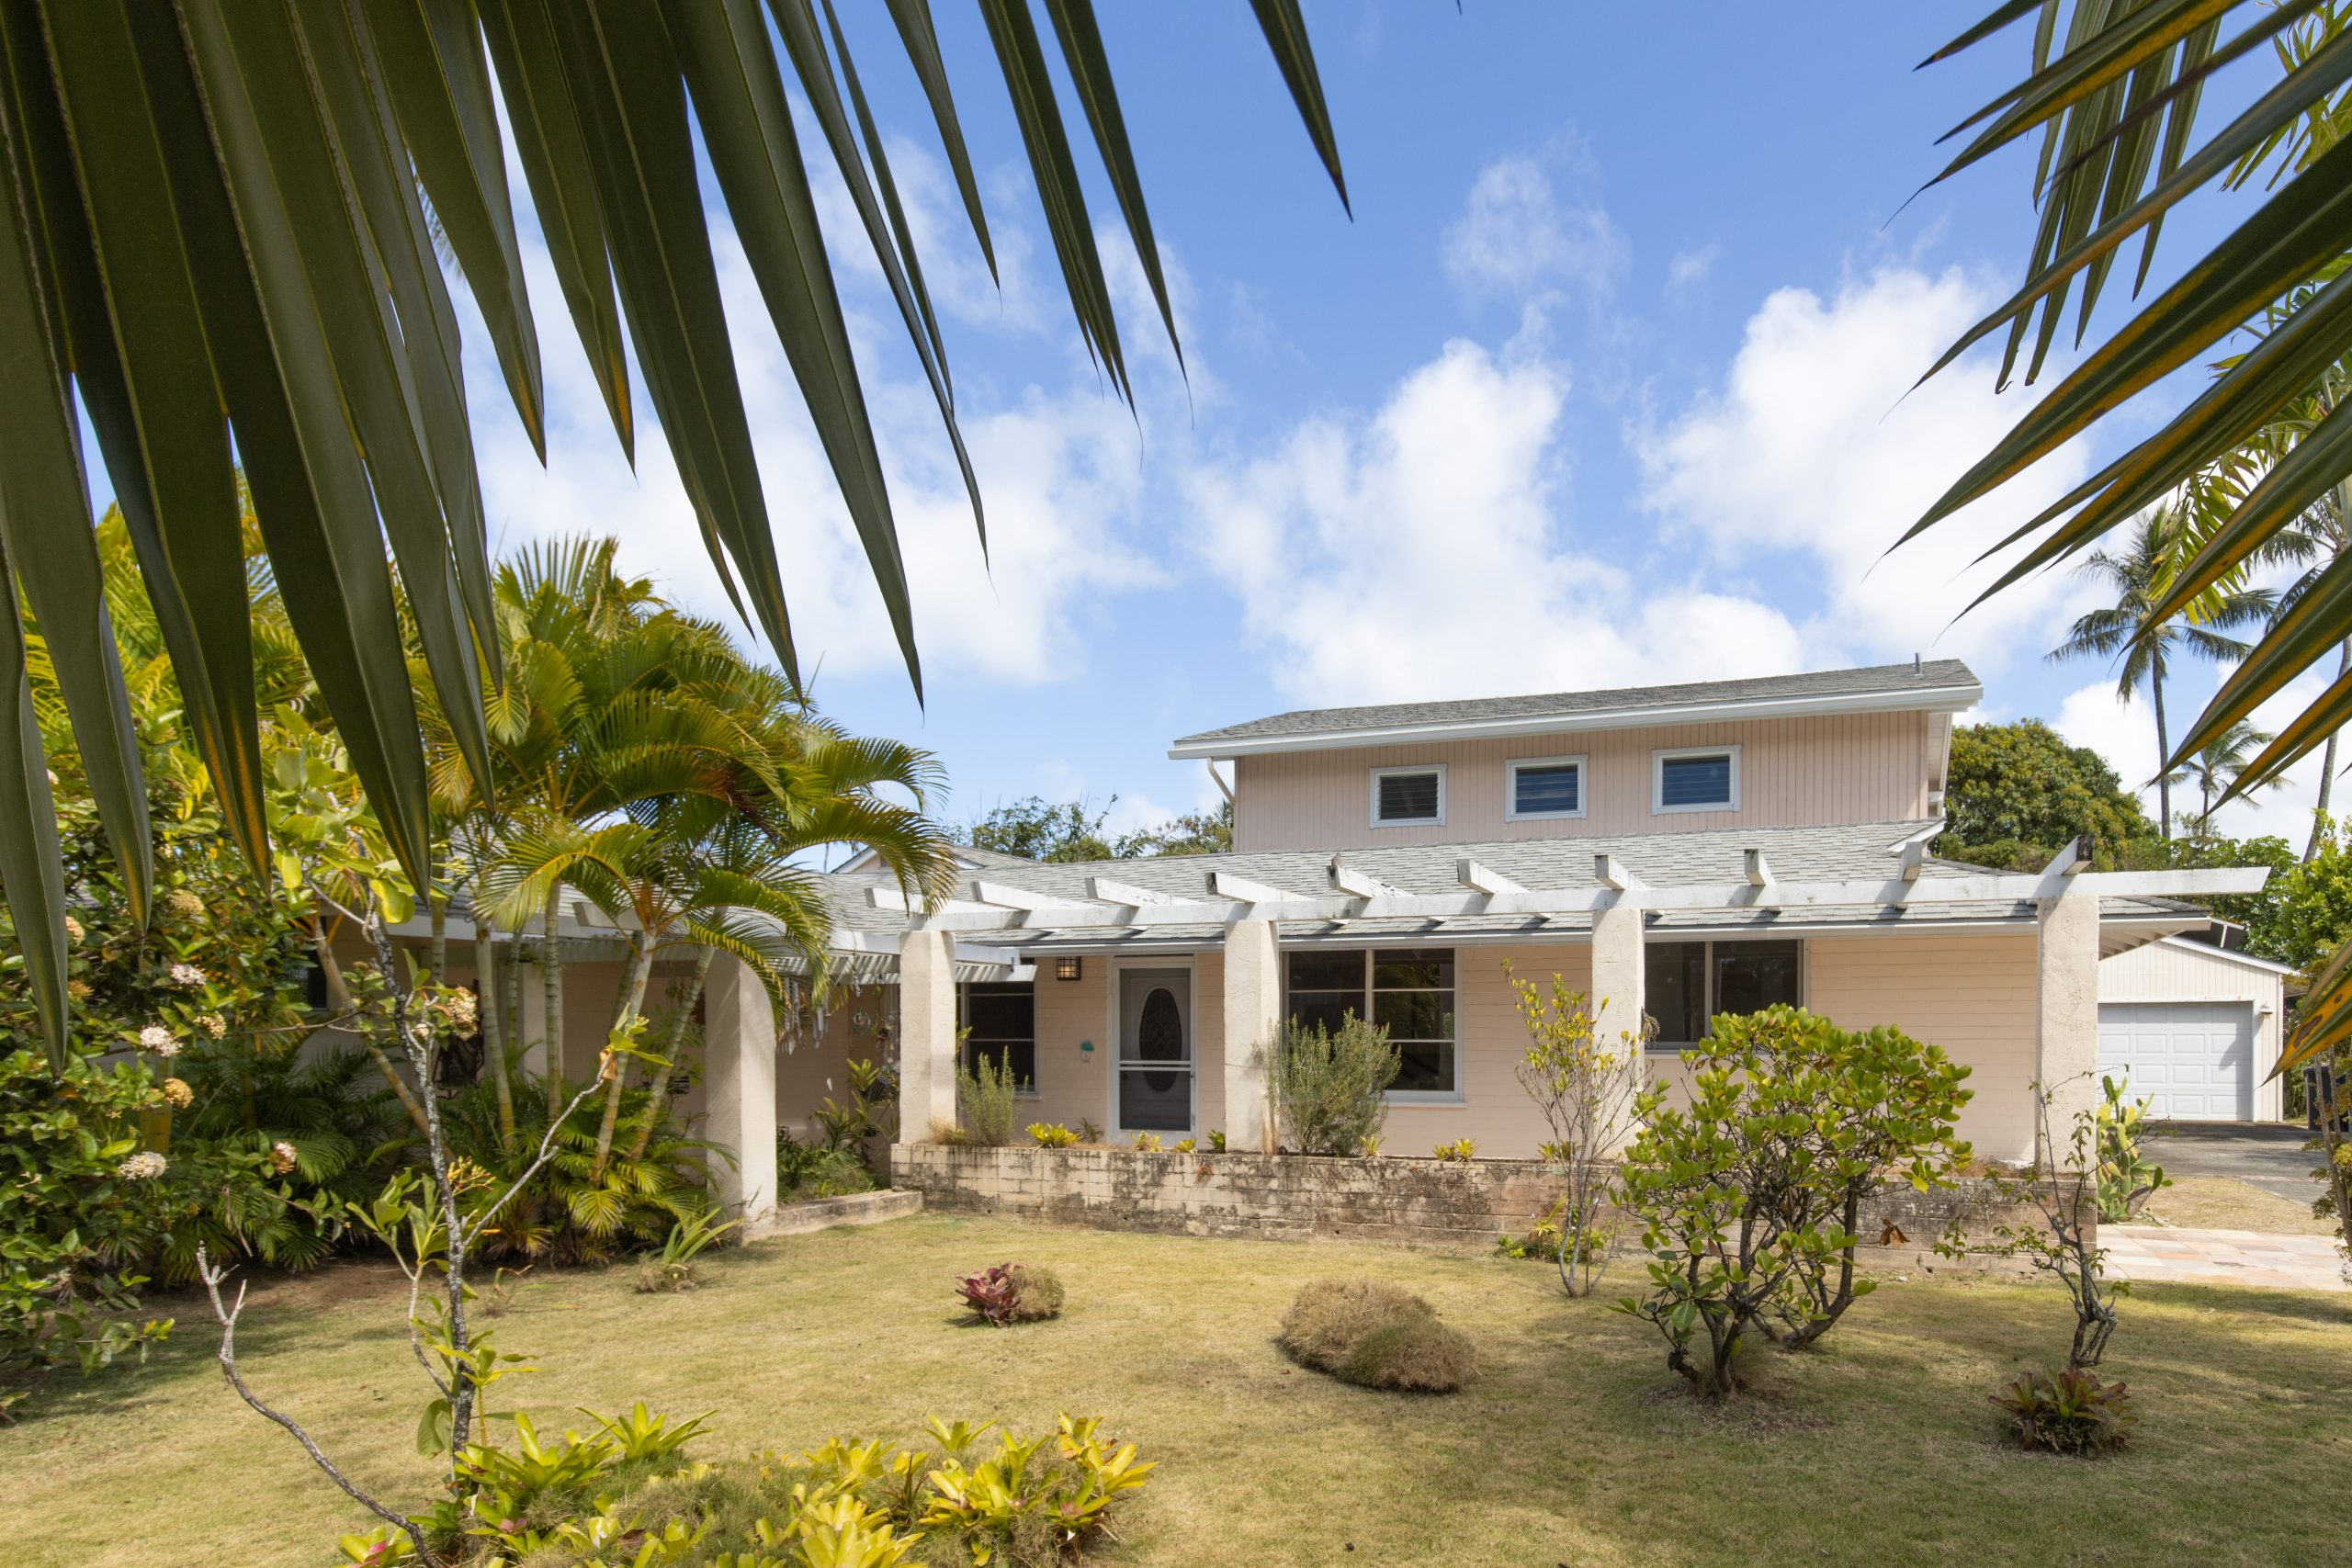 One of the most desirable neighborhoods in Kailua!